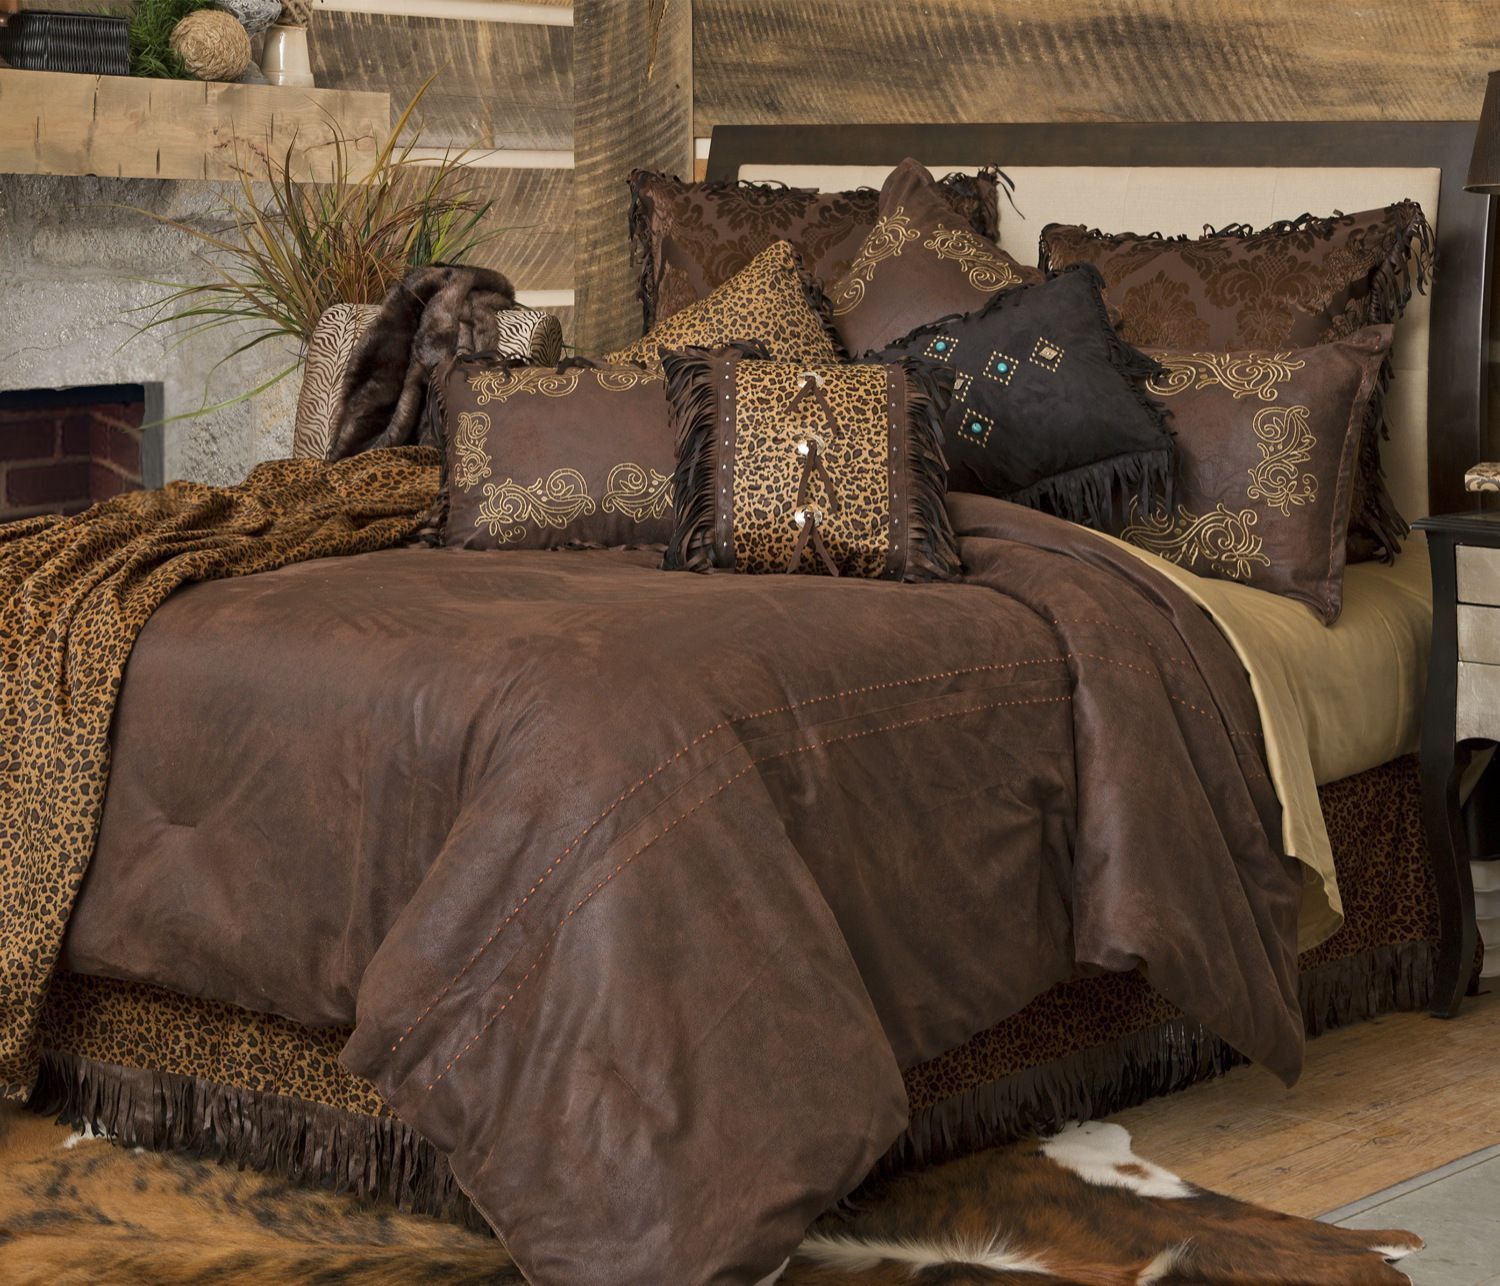 queen for comforters comforter mesmerizing tan sears exceptionallack black tanedding andn with sets bed style quilt and cabin sale exceptional toileaby ease damask cabins primitive captivating bedroom bedding